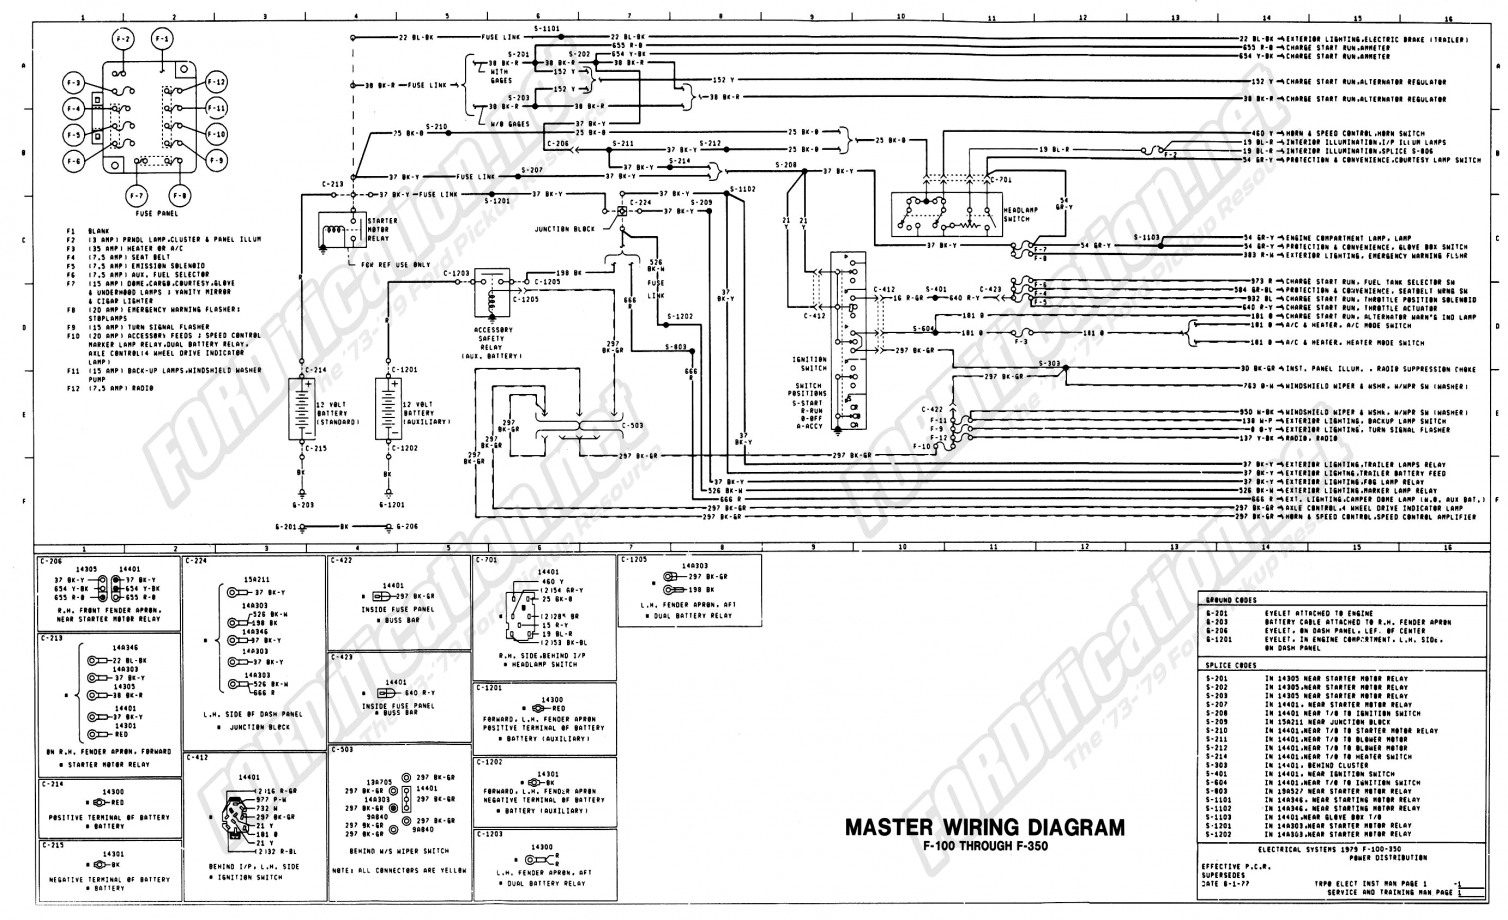 hight resolution of dt466e injector wiring diagram free picture schematic the types of international truck wiring diagram